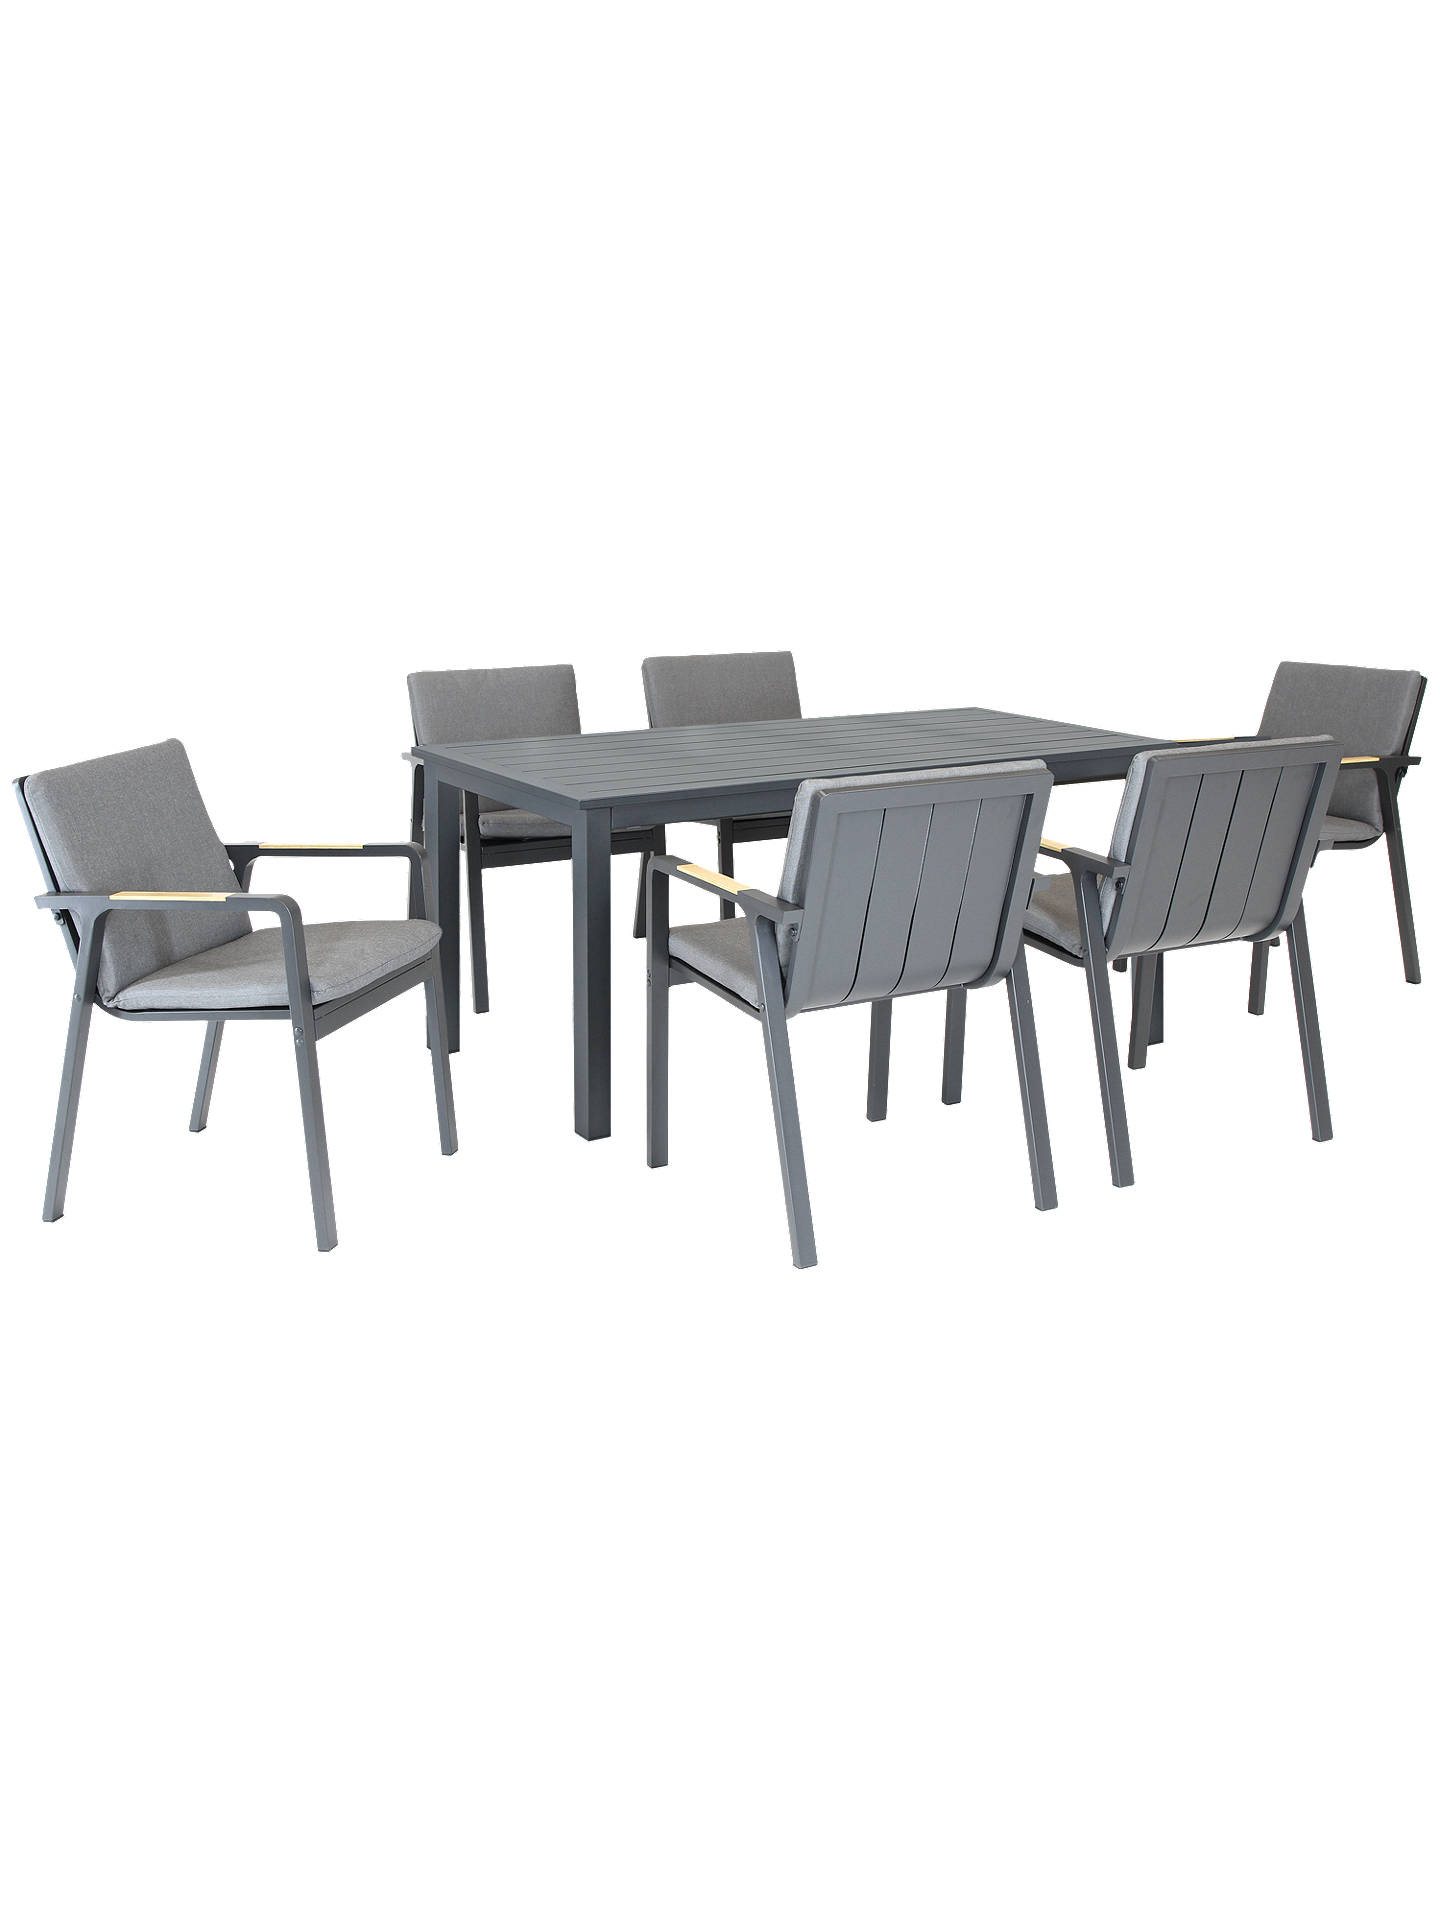 Buykettler paros 6 seater garden dining table and chairs set grey online at johnlewis